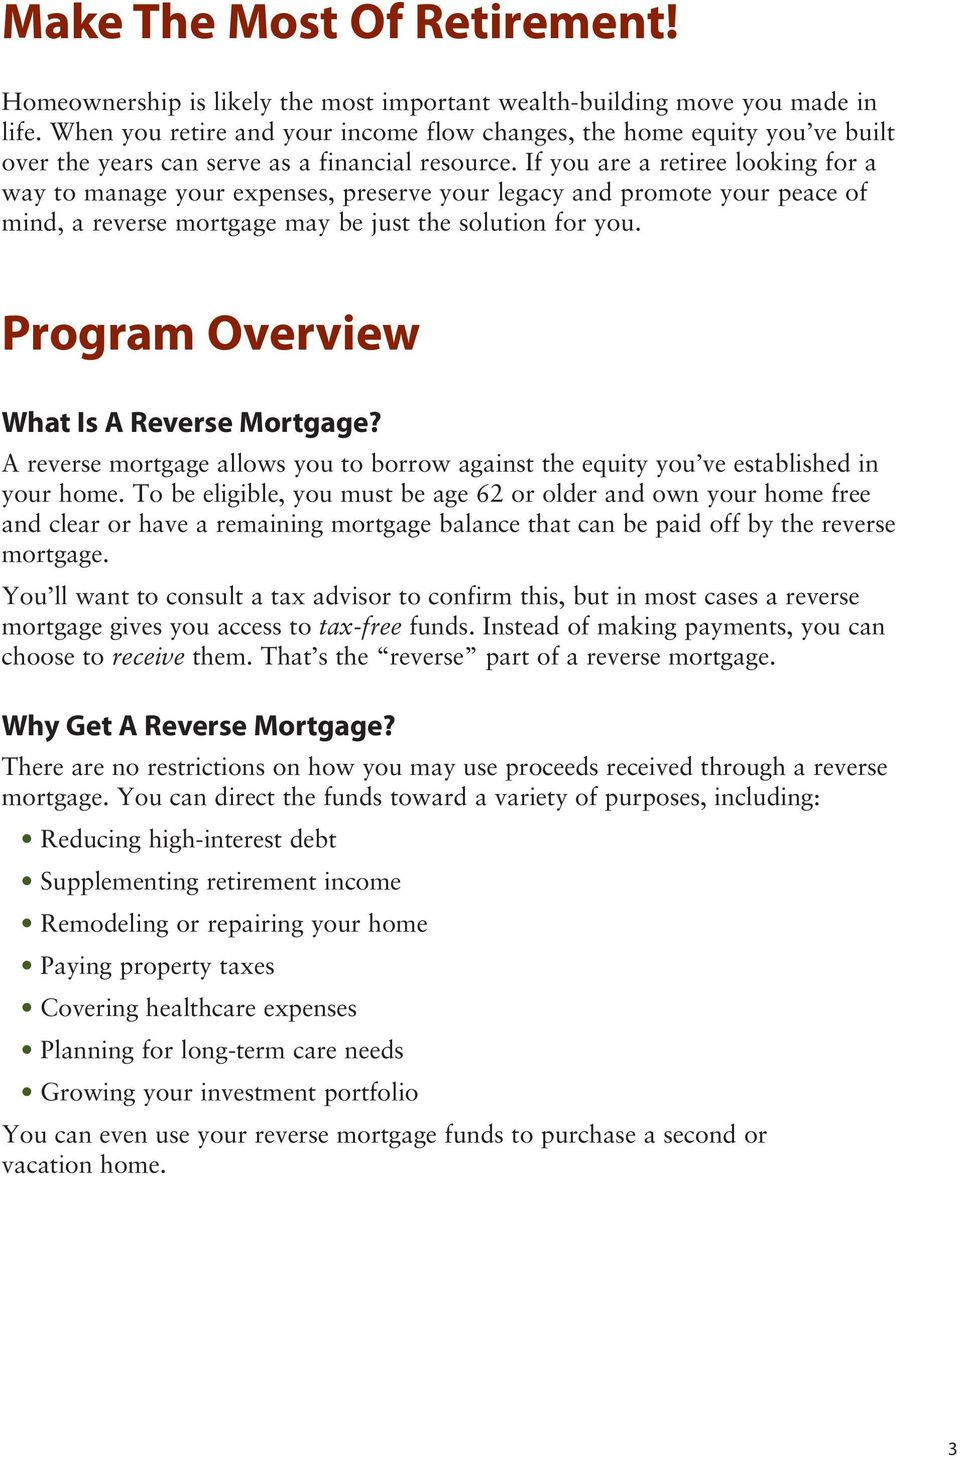 If you are a retiree looking for a way to manage your expenses, preserve your legacy and promote your peace of mind, a reverse mortgage may be just the solution for you.